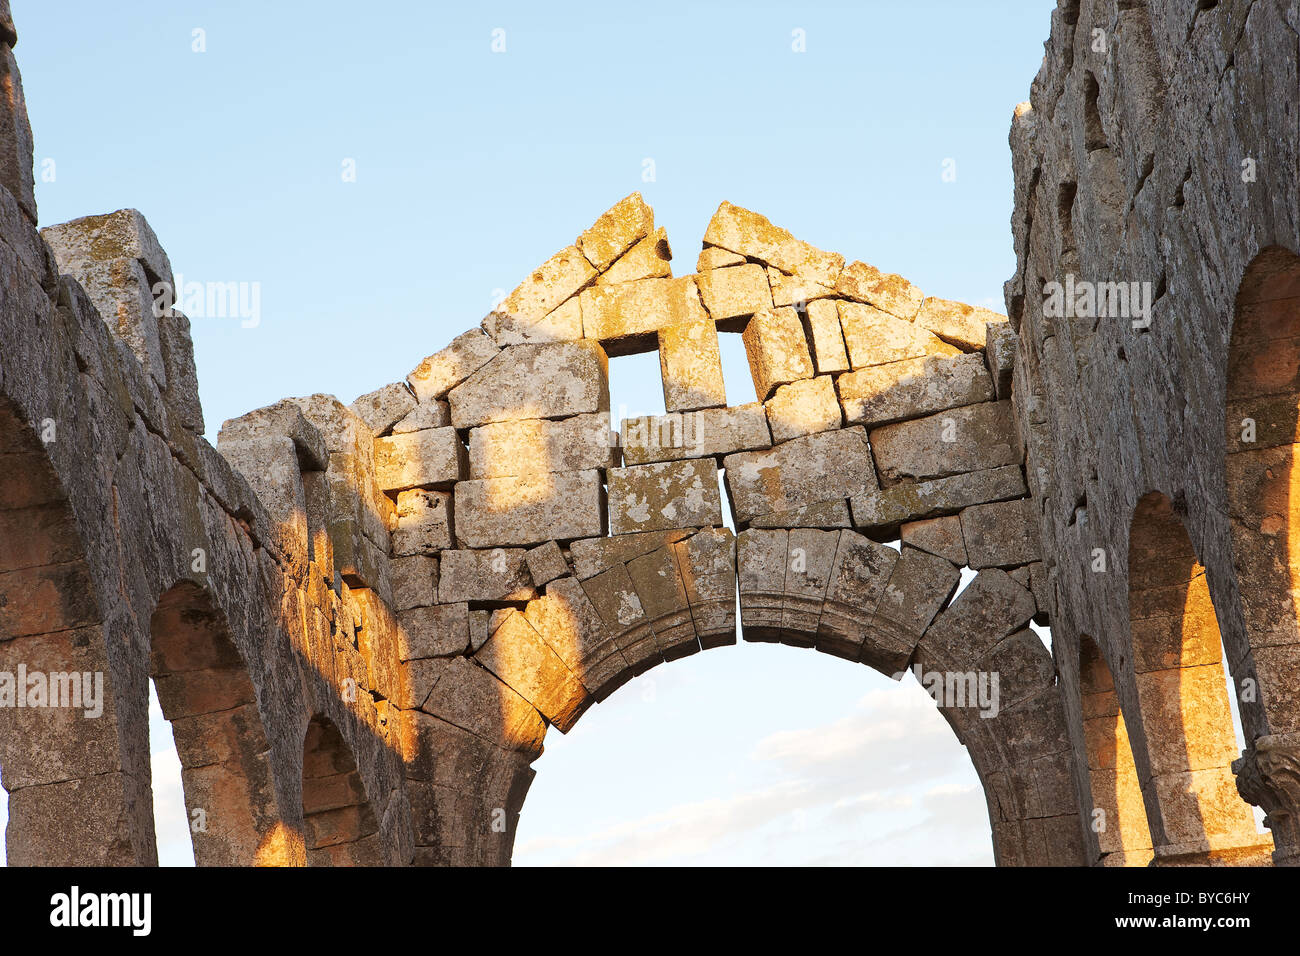 Deserted ruins of Kharrab Shams 'Forgotten City', north of Aleppo, Syria in evening sun. Interior detail. - Stock Image